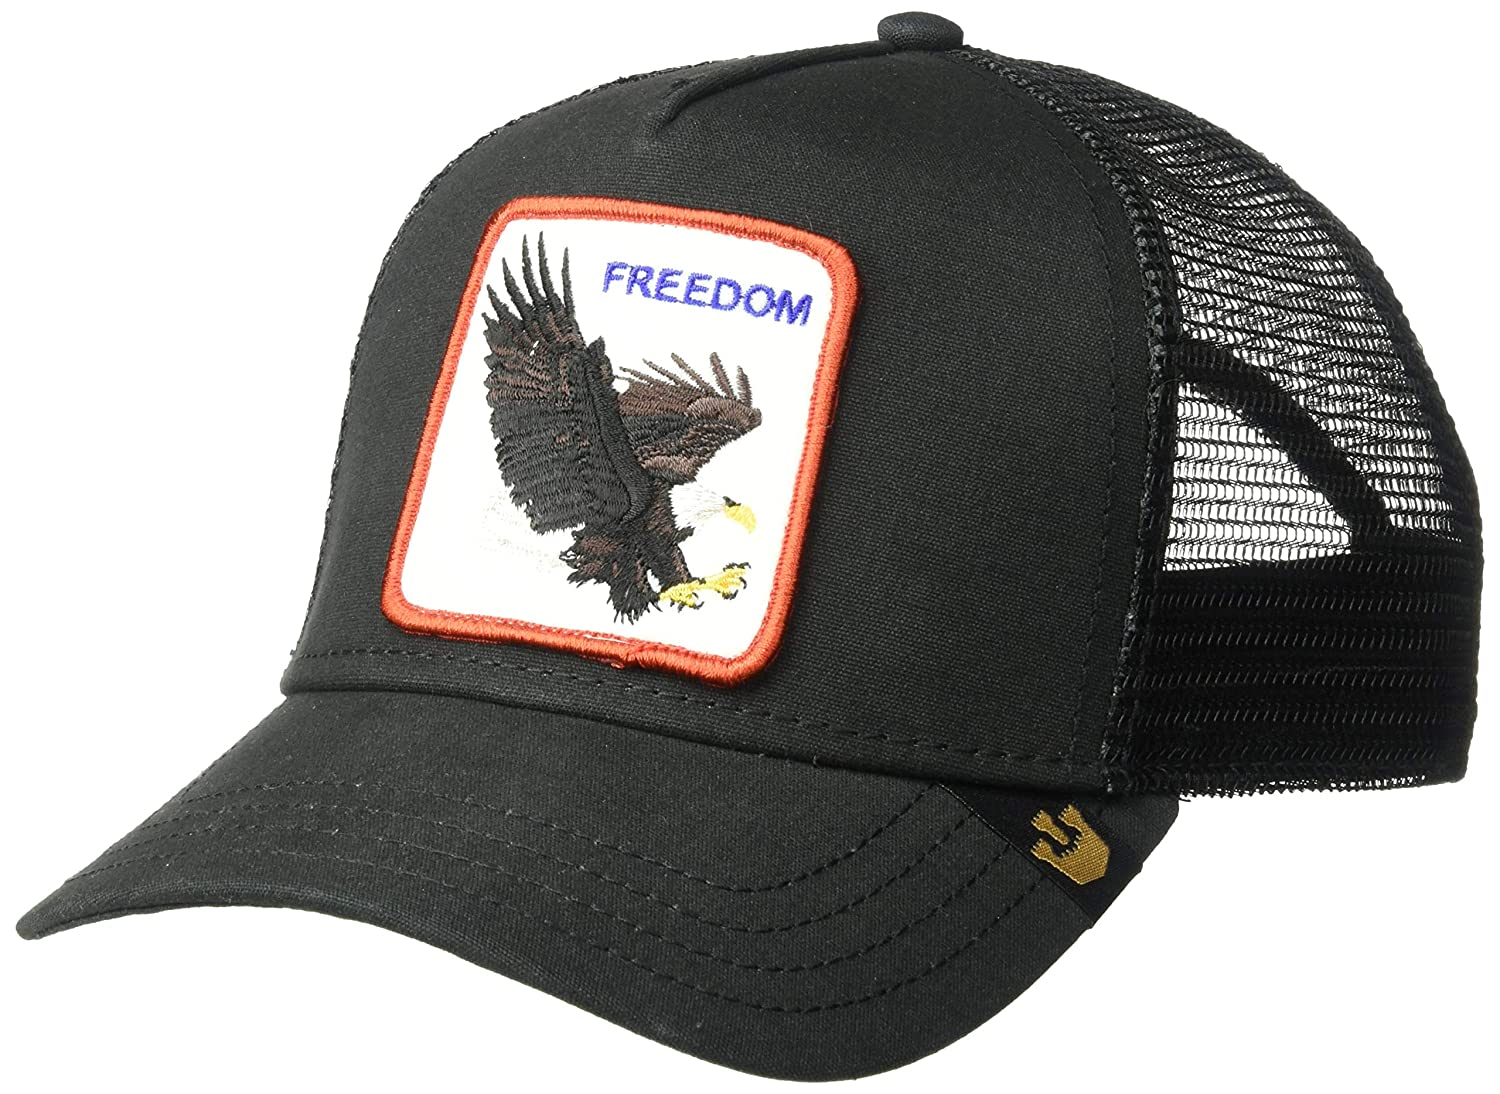 c781d35e Goorin Bros. Mens Animal Farm Snap Back Trucker Hat Baseball Cap - Black - One  Size: Amazon.com.au: Fashion